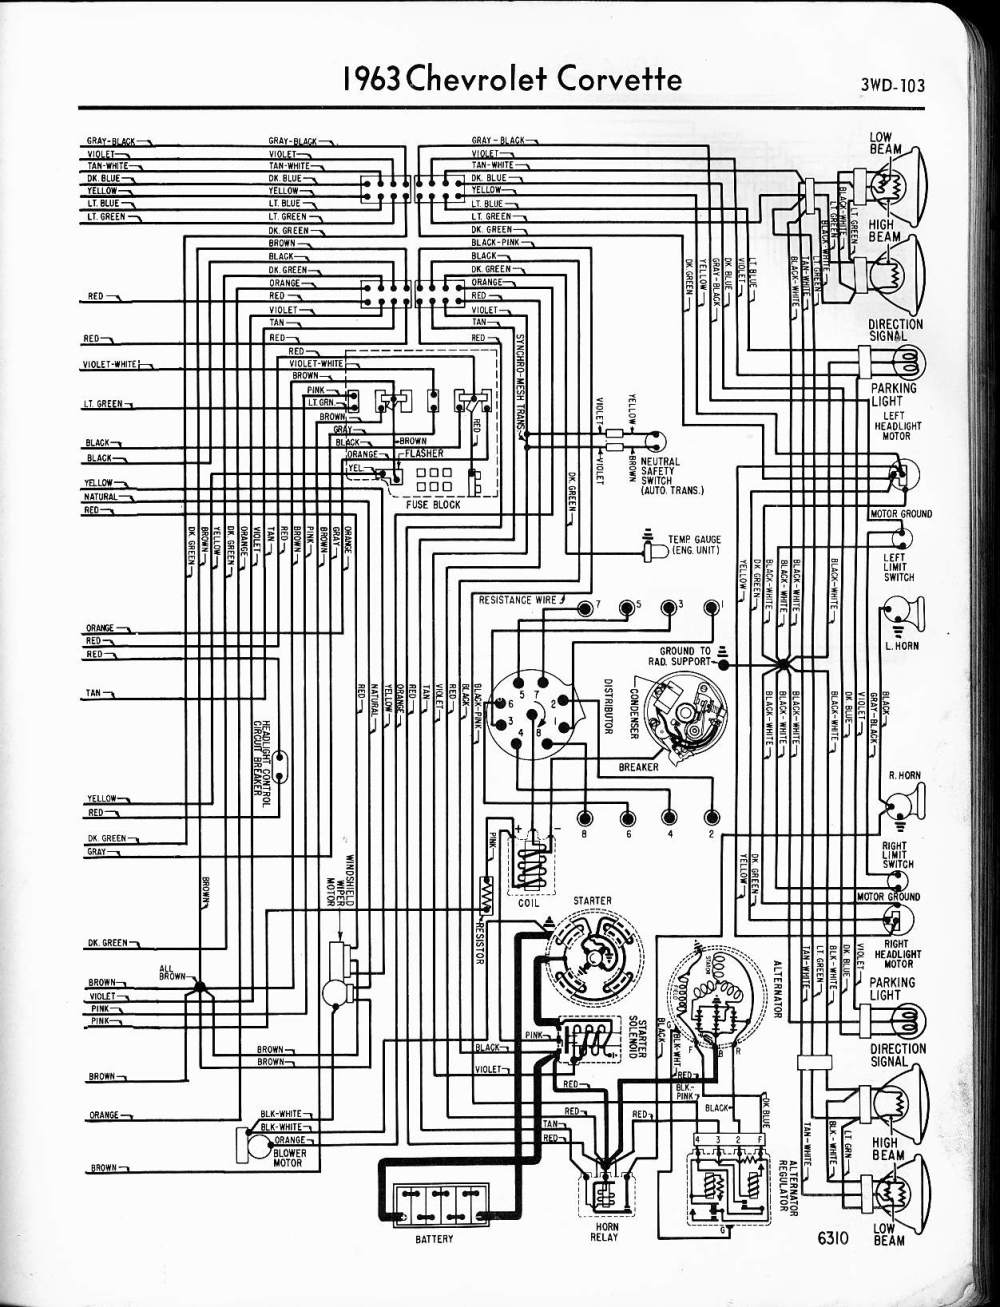 medium resolution of 1963 chevrolet wiring diagram wiring diagrams 1979 chevy alternator wiring diagram 57 65 chevy wiring diagrams